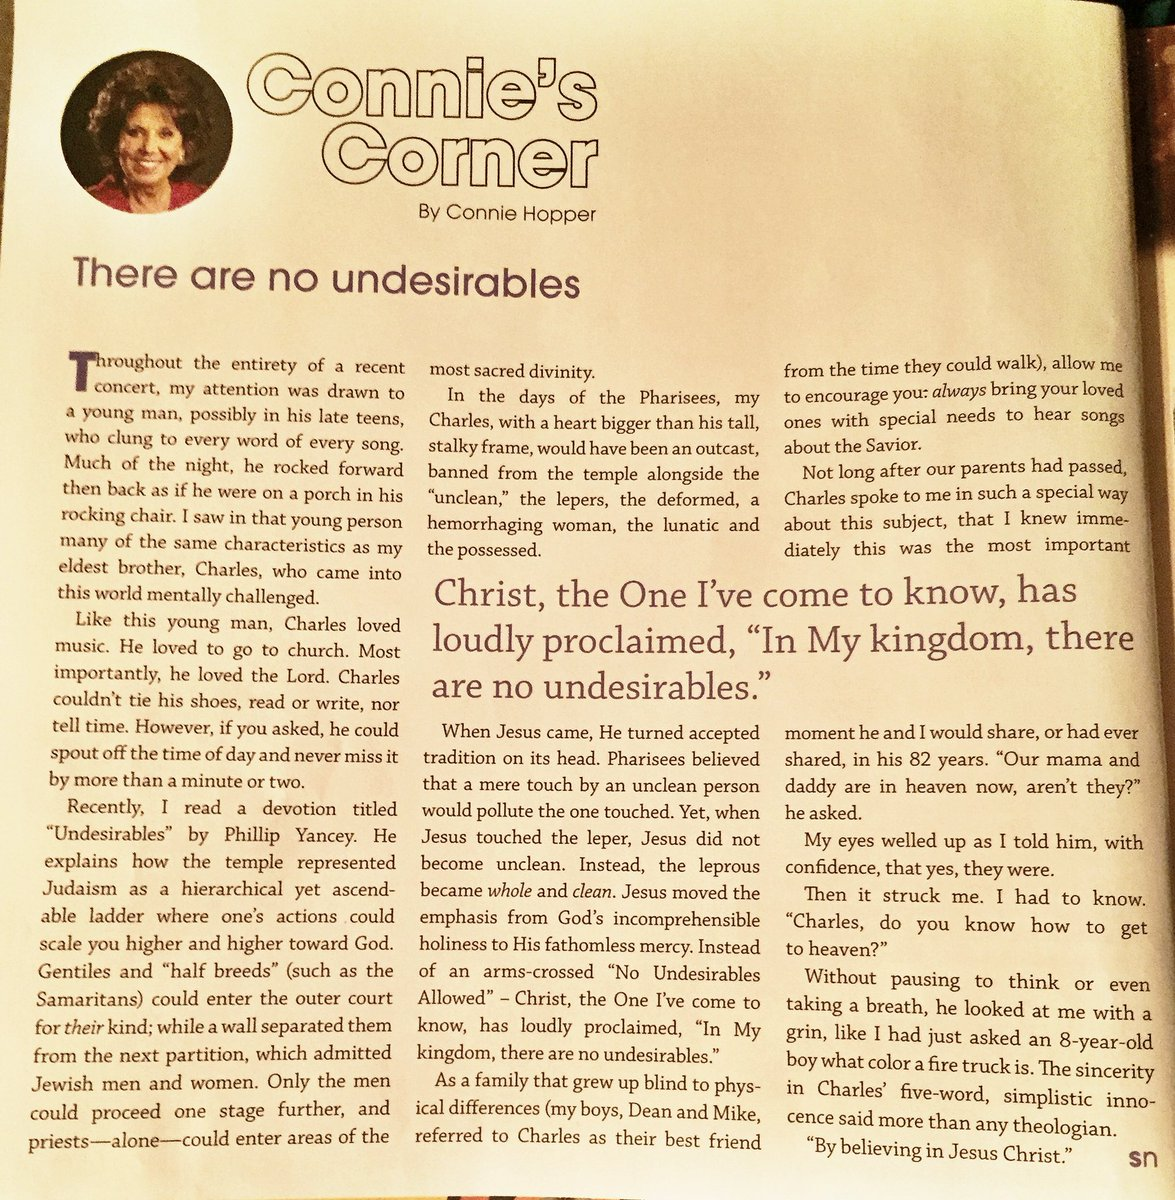 Mom's article in the May issue of @singingnews is a MUST read for ALL! Go grab a copy right now! Here's a snapshot https://t.co/m2dZXoaak6